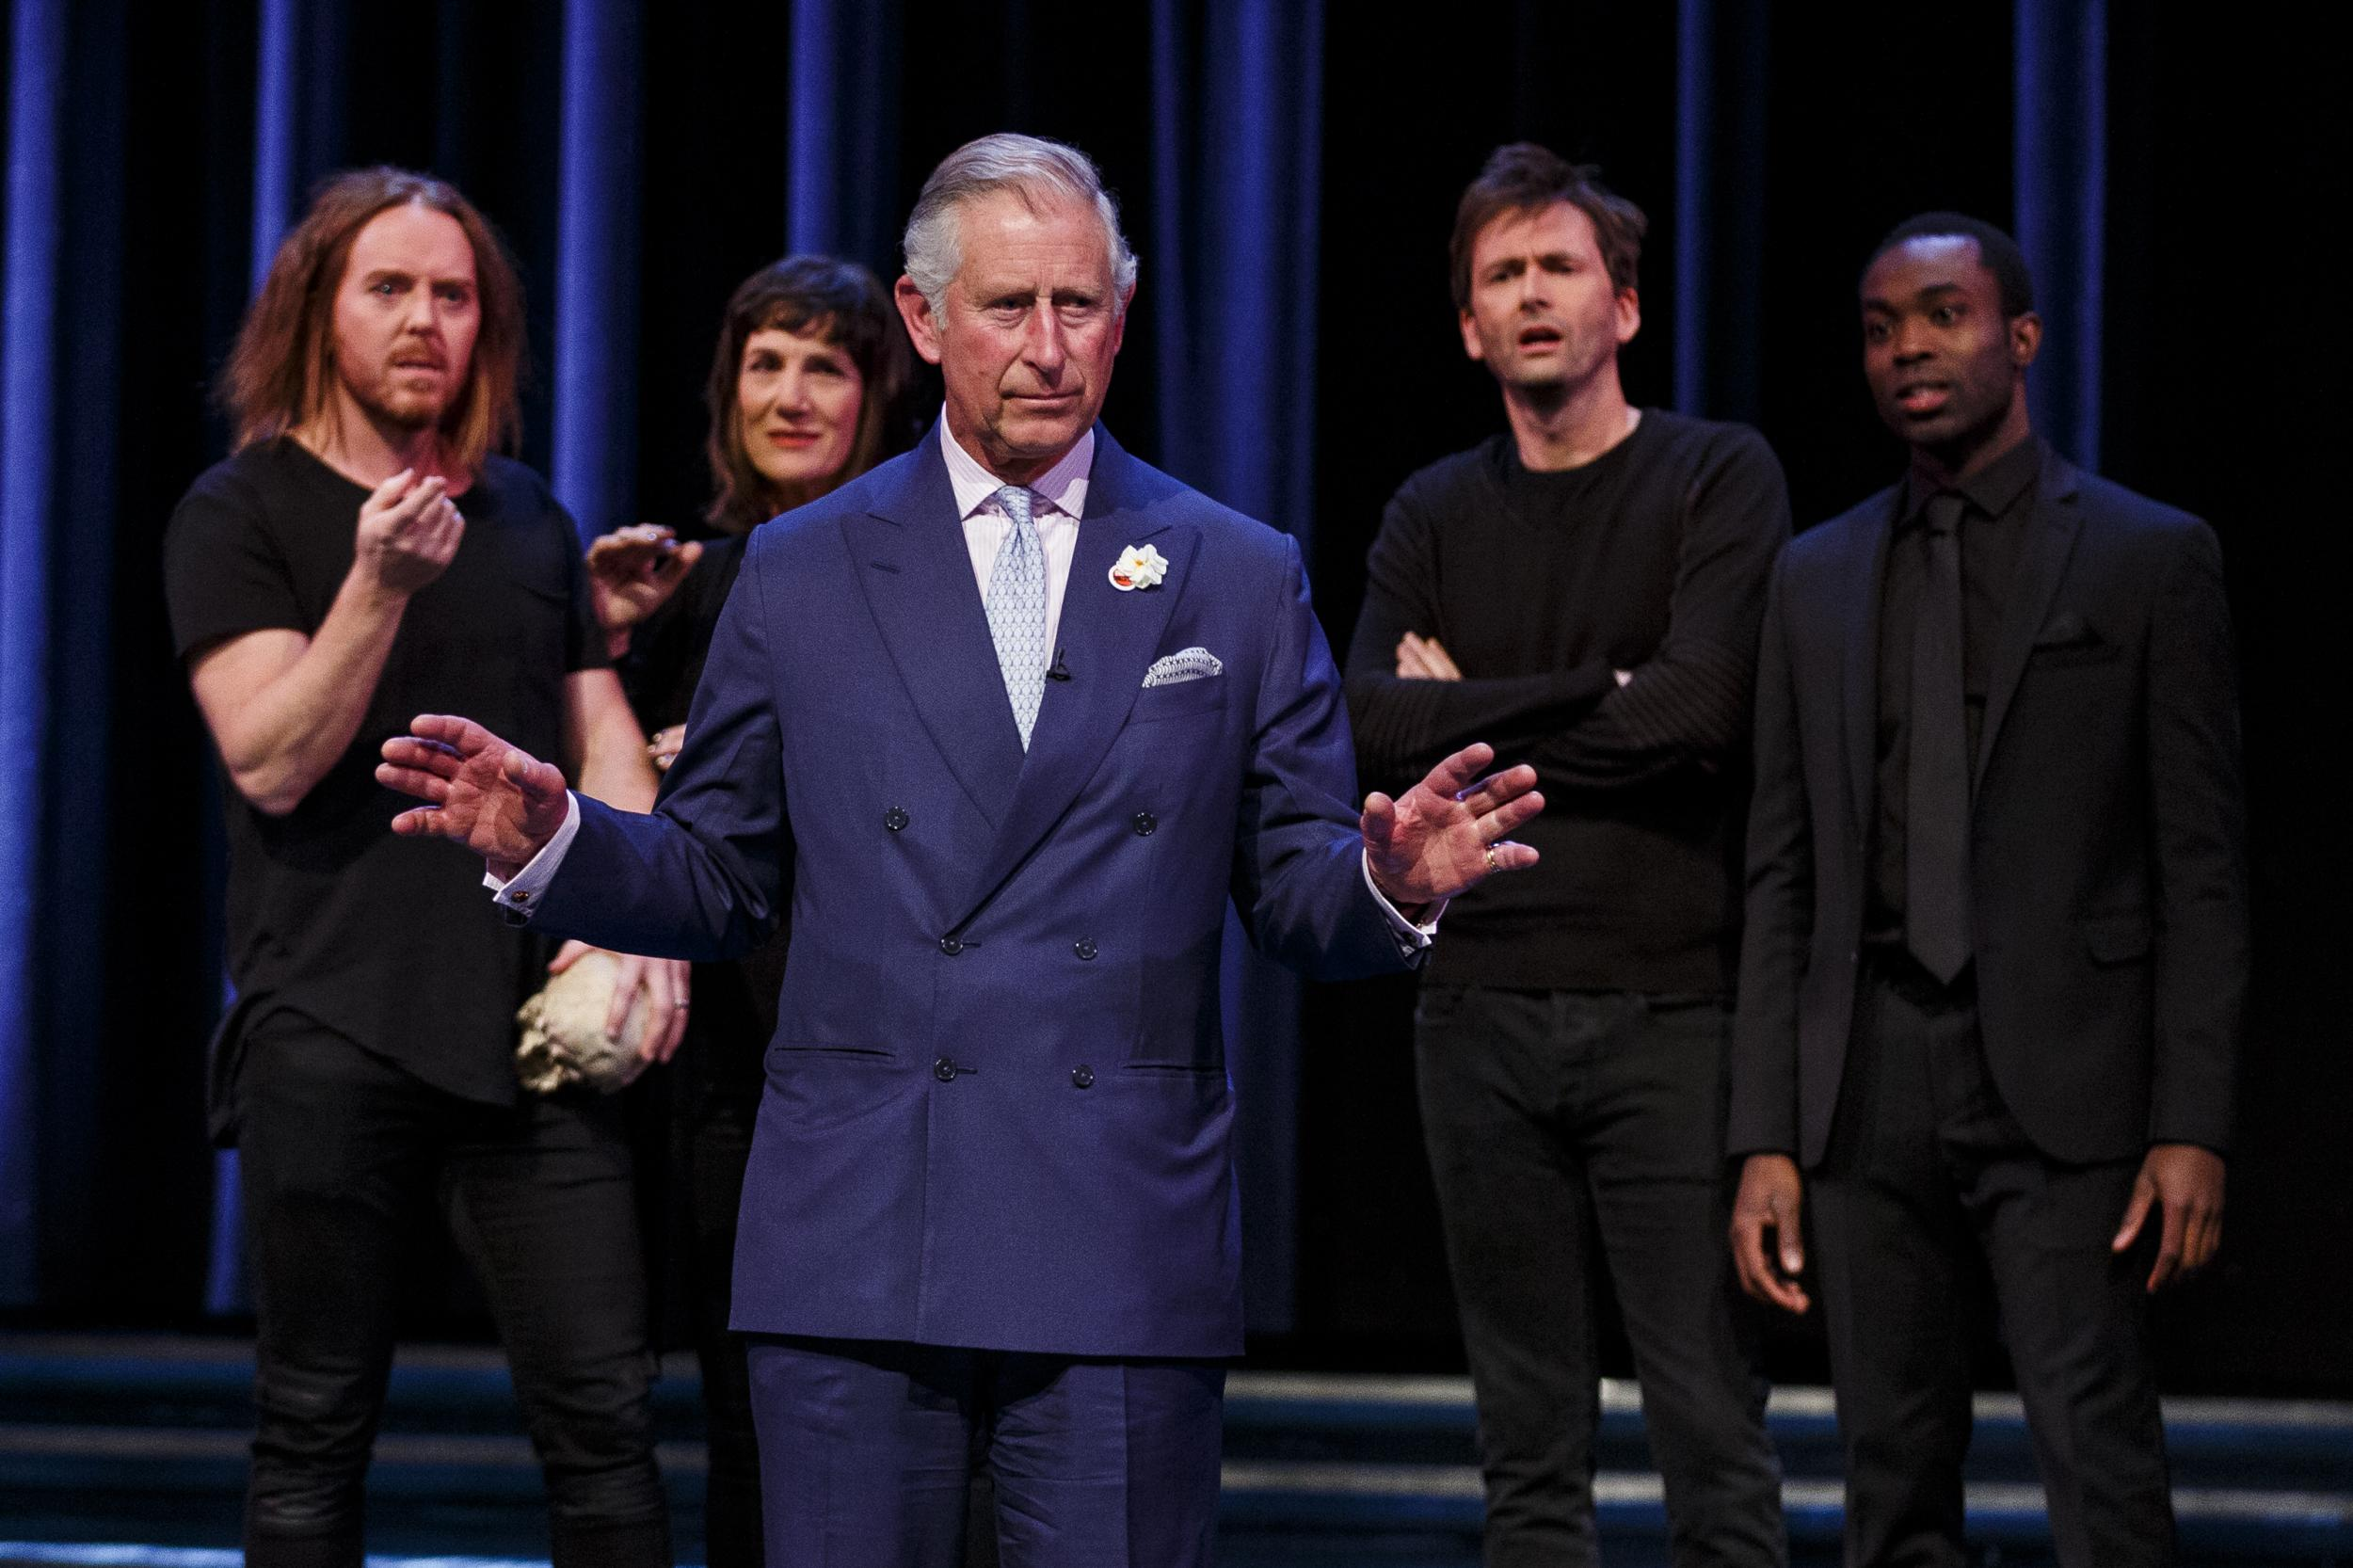 prince charles reads shakespeare s hamlet alongside sir ian prince charles reads shakespeare s hamlet alongside sir ian mckellen david tennant and dame judi dench the independent